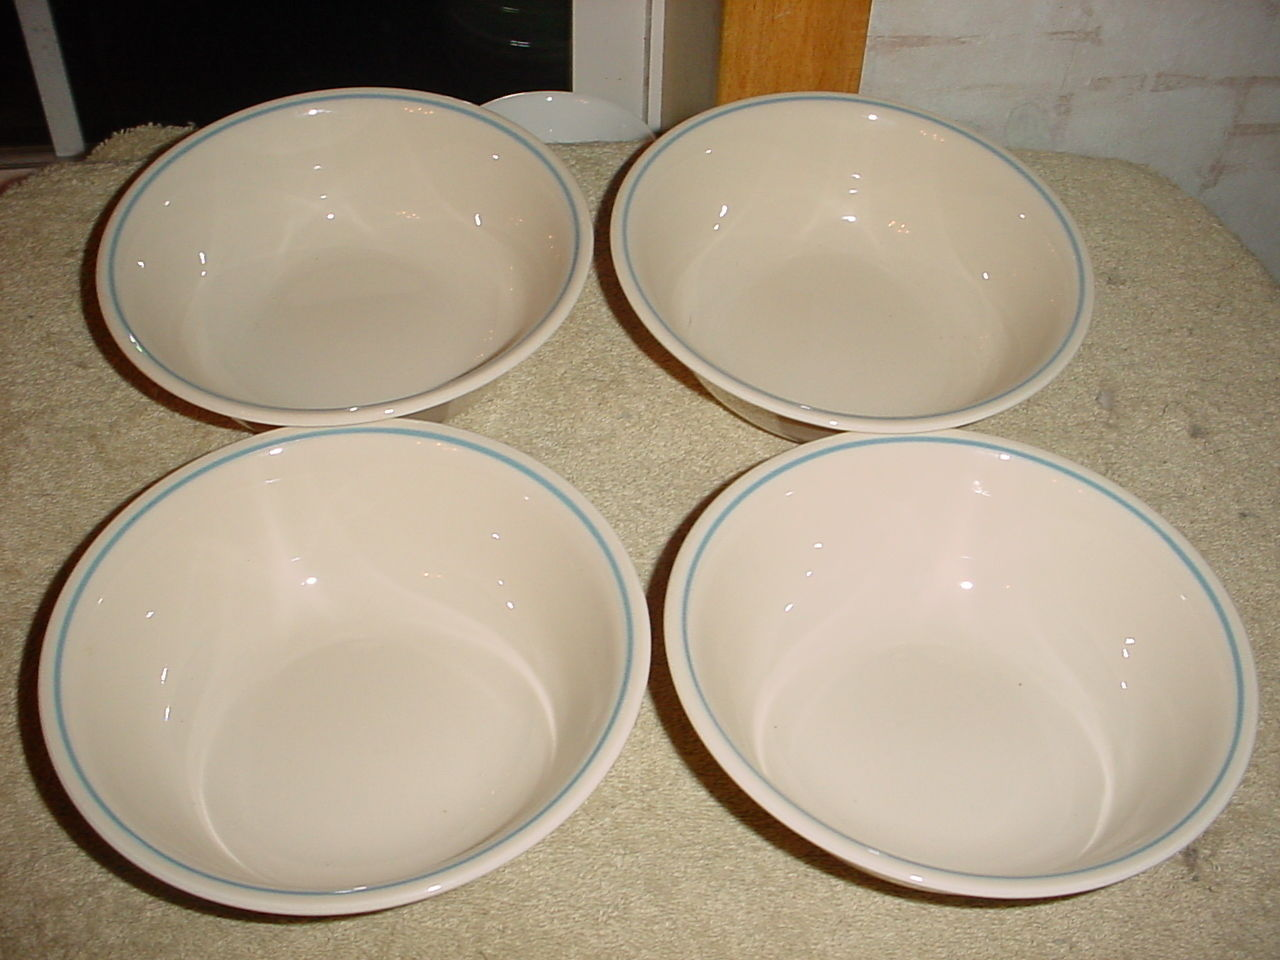 Primary image for CORELLE FIRST OF SPRING SOUP / CEREAL BOWLS x 4 VGUC FREE USA SHIPPING